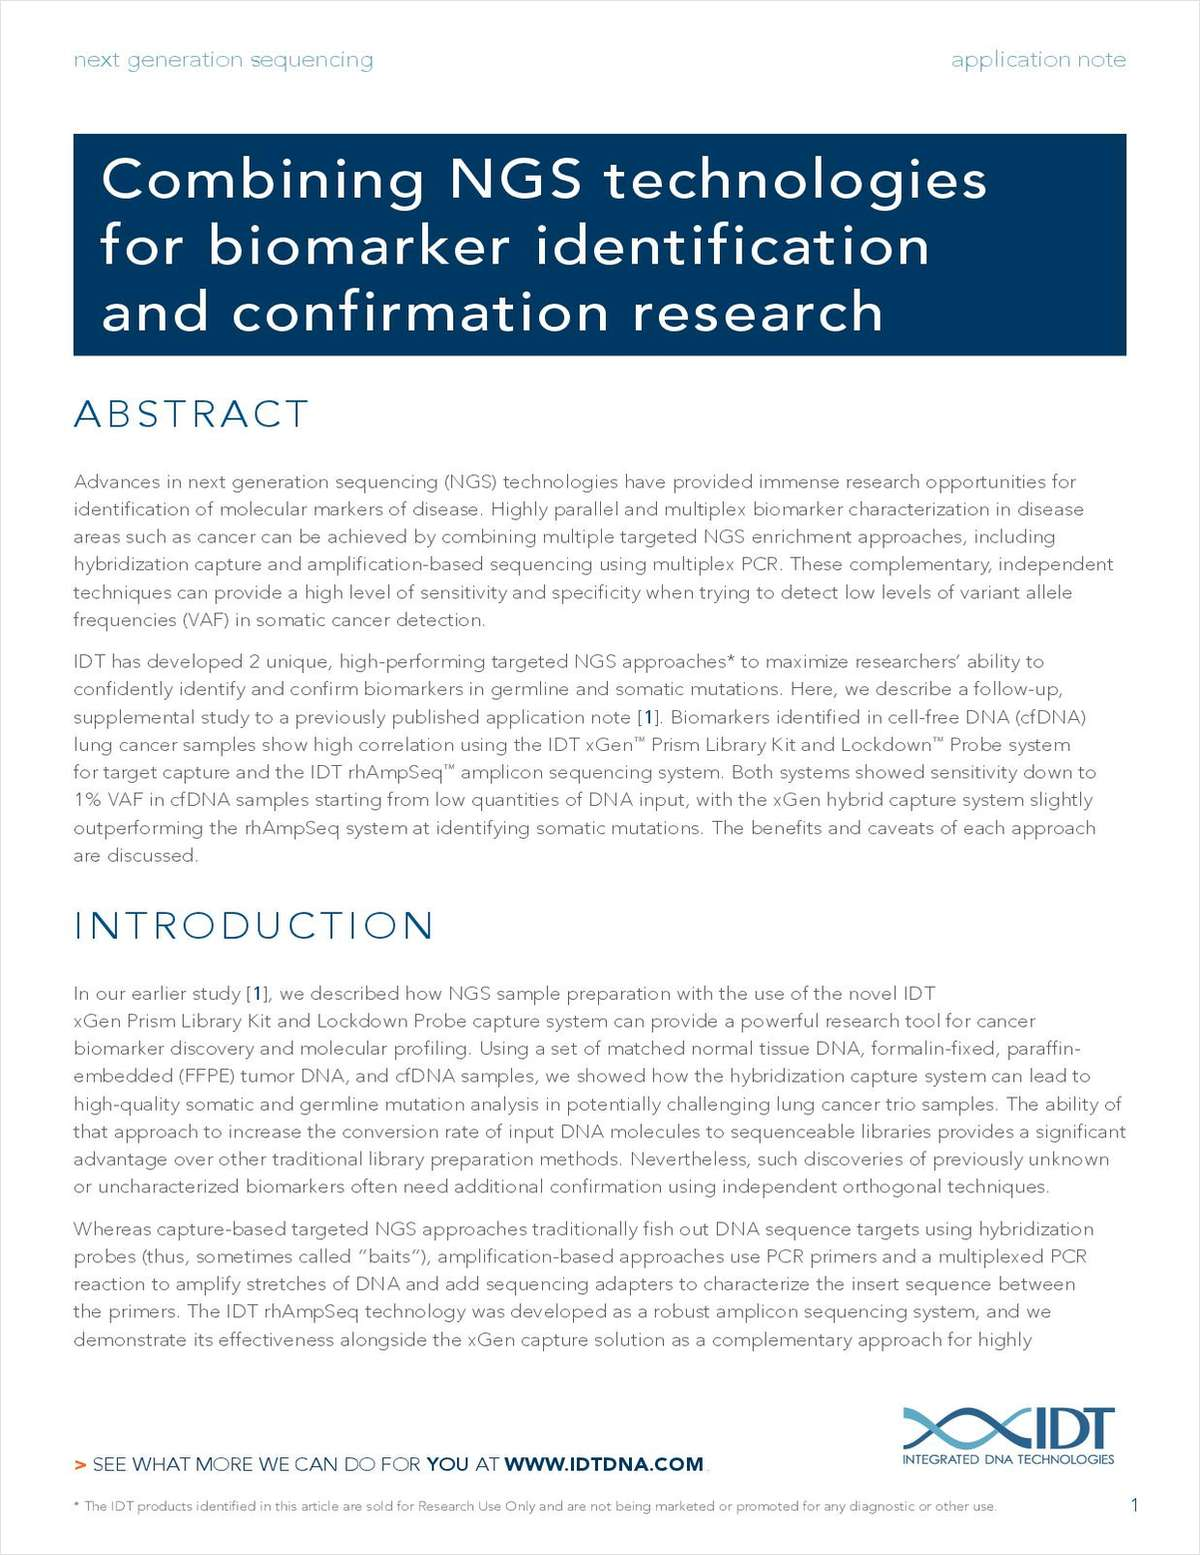 Combining NGS Technologies for Biomarker Identification and Confirmation Research